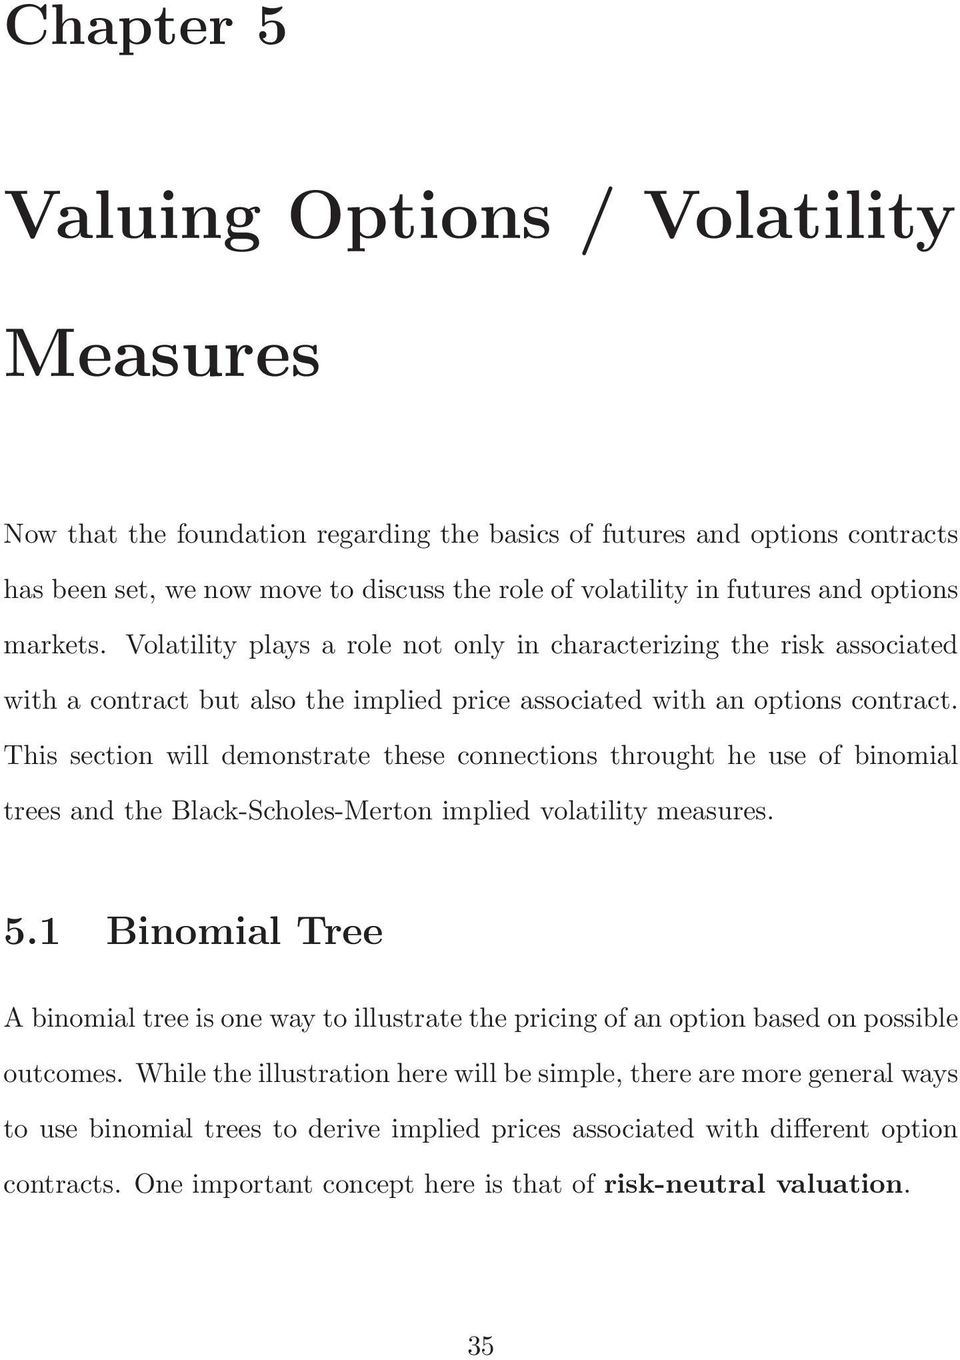 This section will demonstrate these connections throught he use of binomial trees and the Black-Scholes-Merton implied volatility measures. 5.